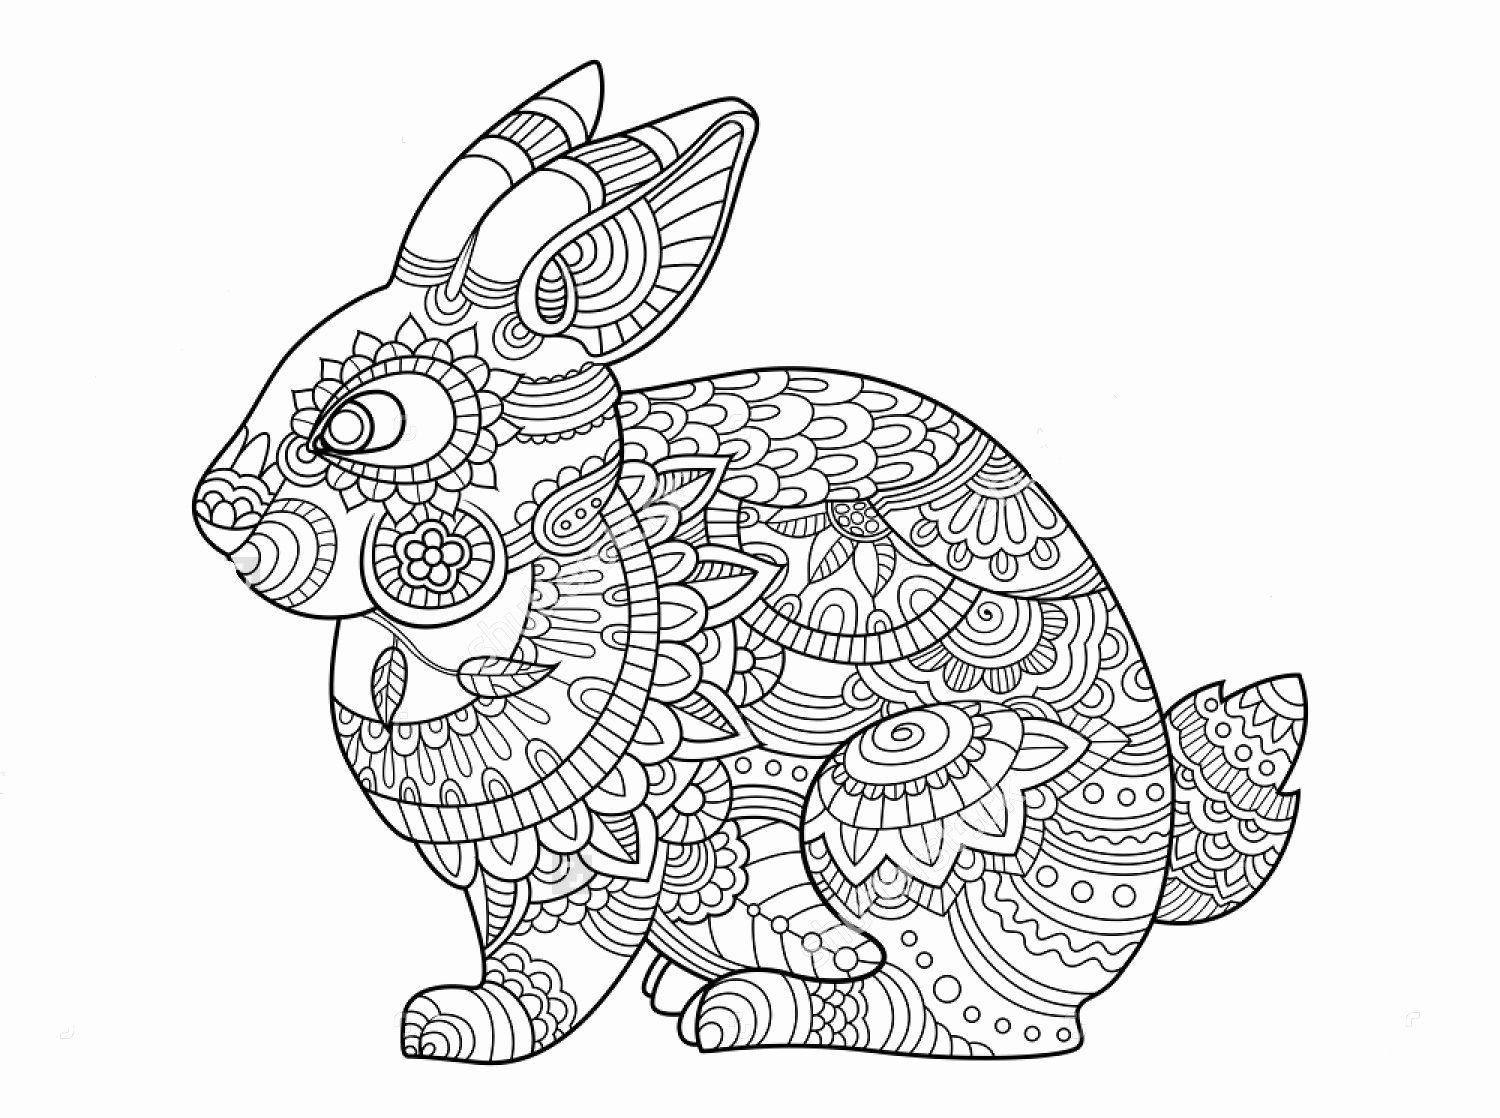 Animal Coloring Pages Rabbit Coloring Pages Gallery Bunny Coloring Pages Mandala Coloring Pages Animal Coloring Pages [ 1118 x 1500 Pixel ]